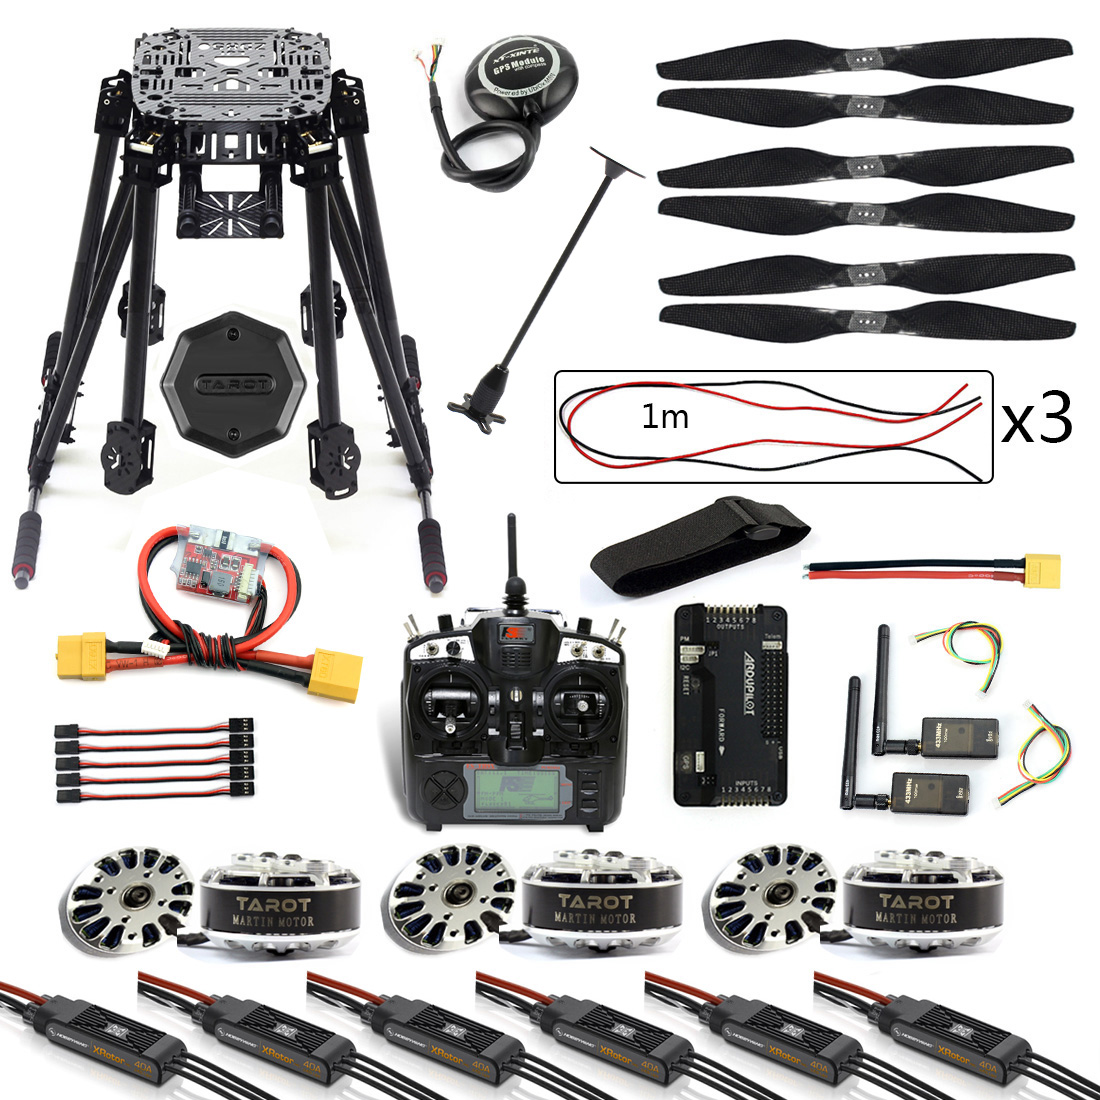 DIY 6-Axle ZD850 Frame Kit <font><b>APM</b></font> <font><b>2.8</b></font> Flight Controller M8N GPS 3DR MHz Telemetry Flysky TH9X TX Motor ESC RC Hexacopter F19833-C image